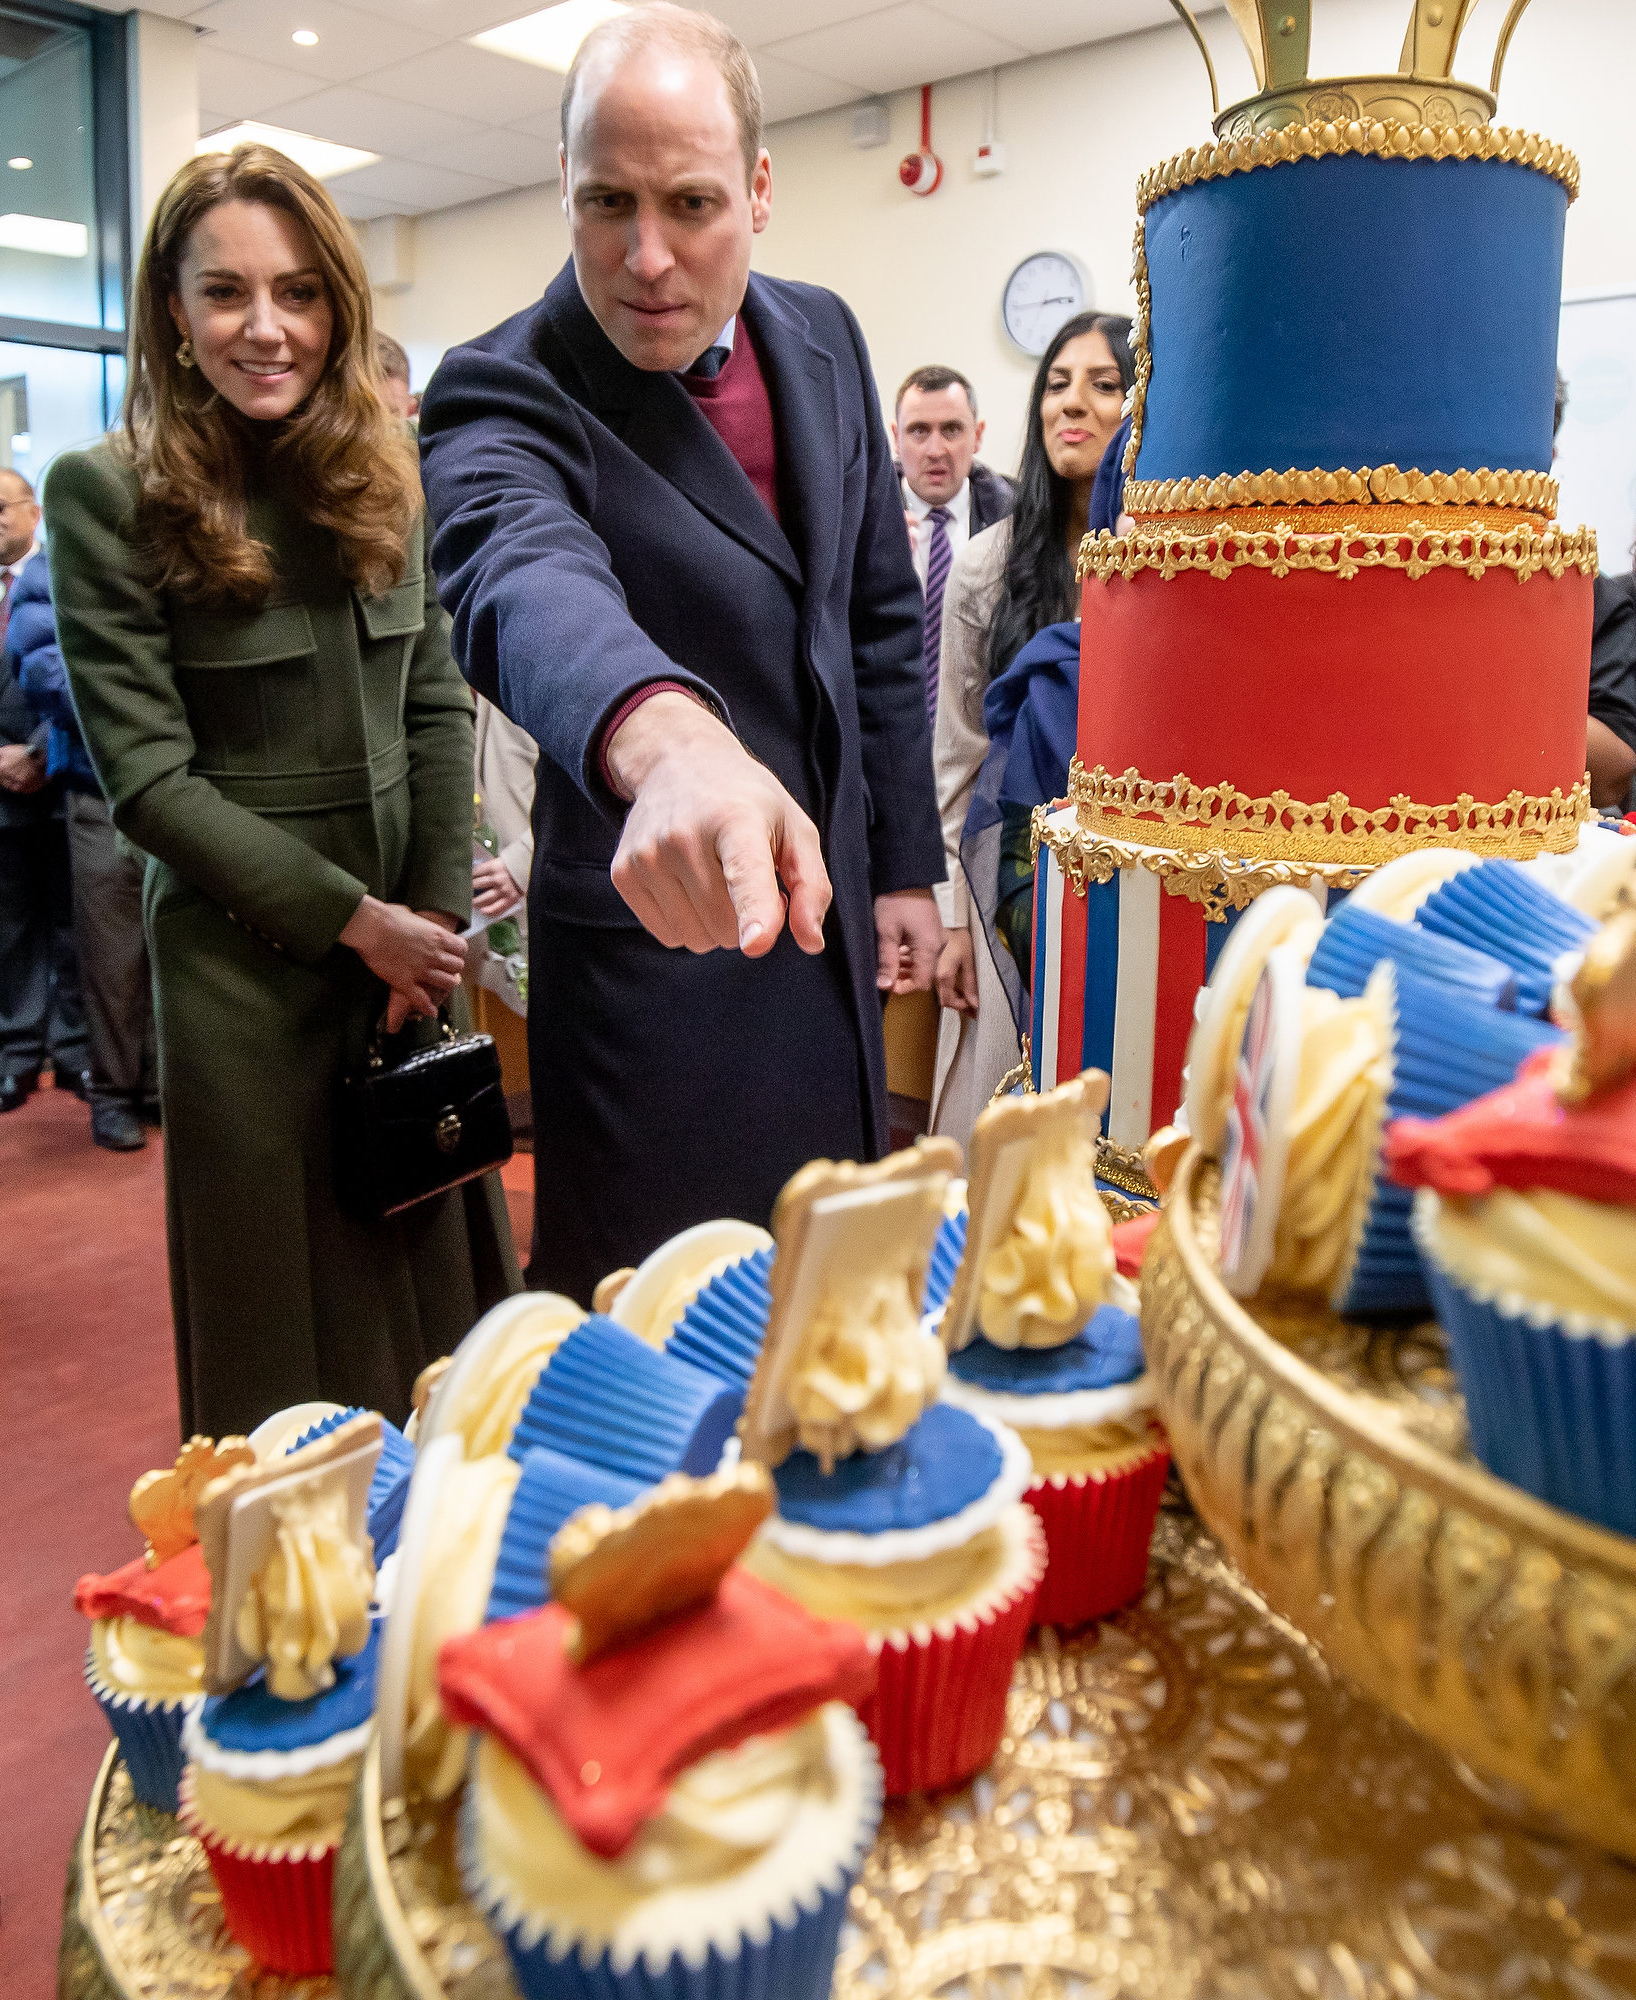 Britain's Prince William, Duke of Cambridge and Britain's Catherine, Duchess of Cambridge react during their visit to the Khidmat Centre in Bradford on January 15, 2020, to learn about the activities and workshops offered by the centre. (Photo by Charlotte Graham / POOL / AFP) (Photo by CHARLOTTE GRAHAM/POOL/AFP via Getty Images)